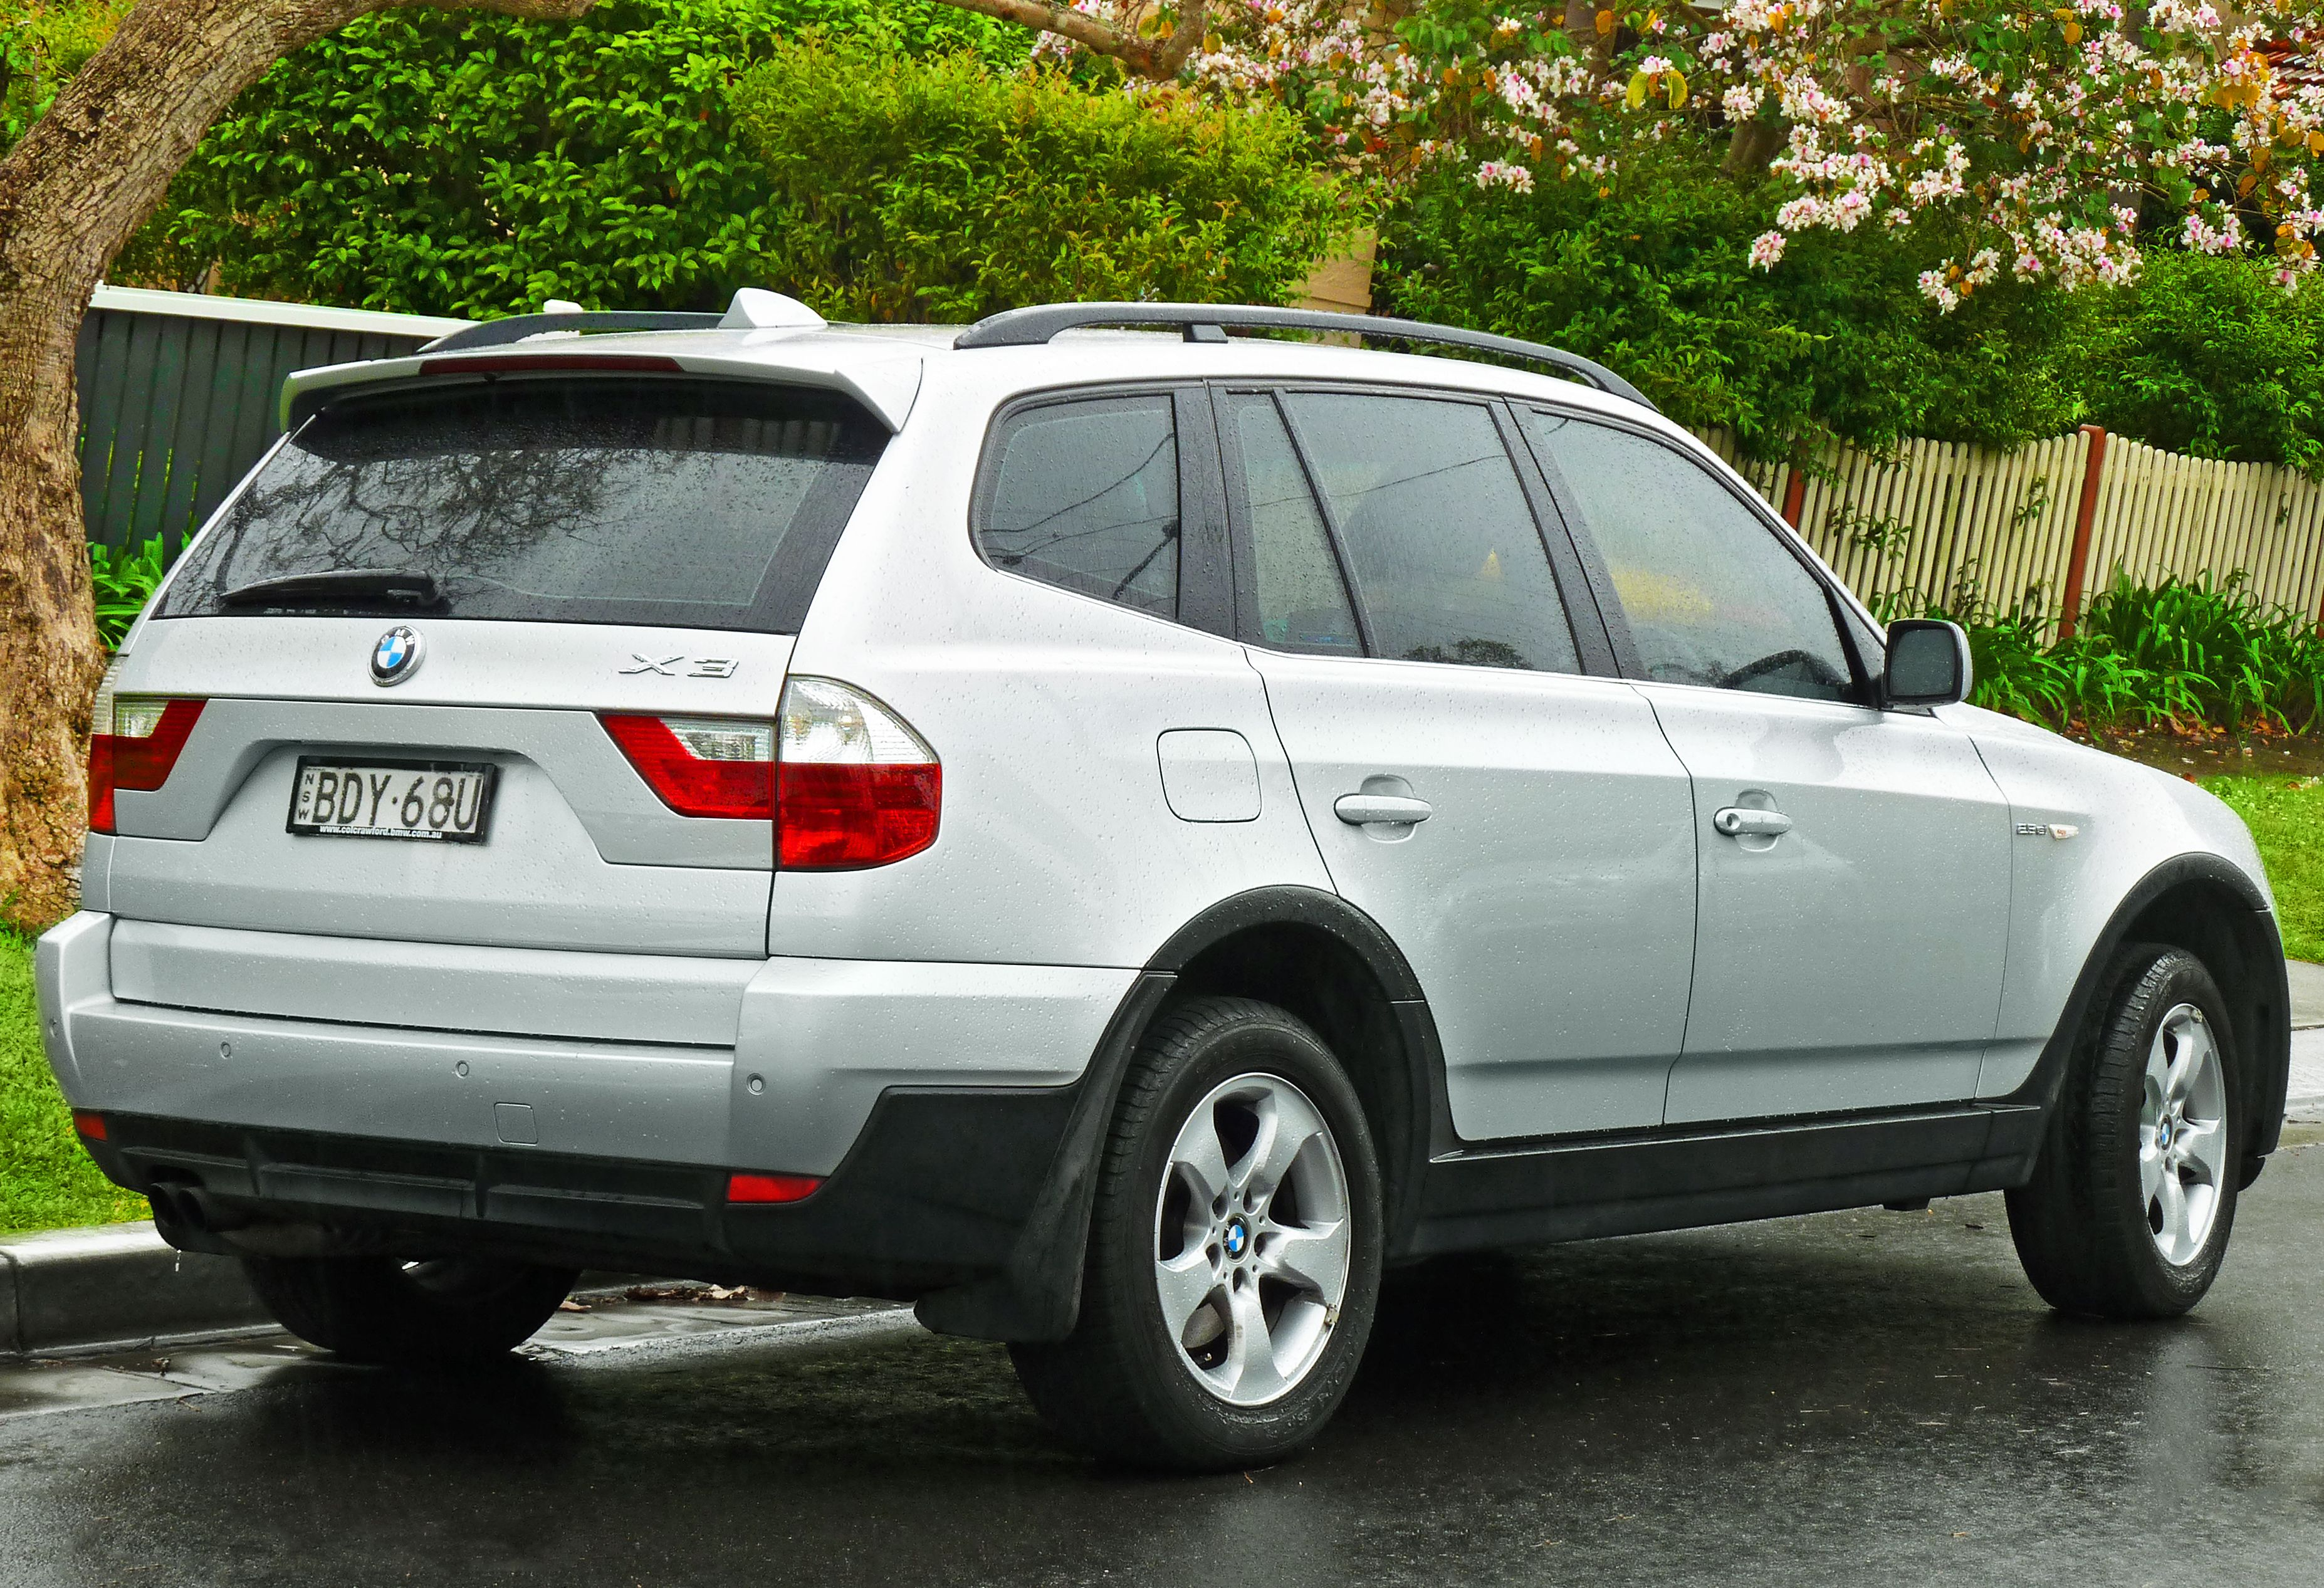 Bmw x3 google search my dream cars pinterest bmw x3 bmw and bmw x3 google search fandeluxe Gallery